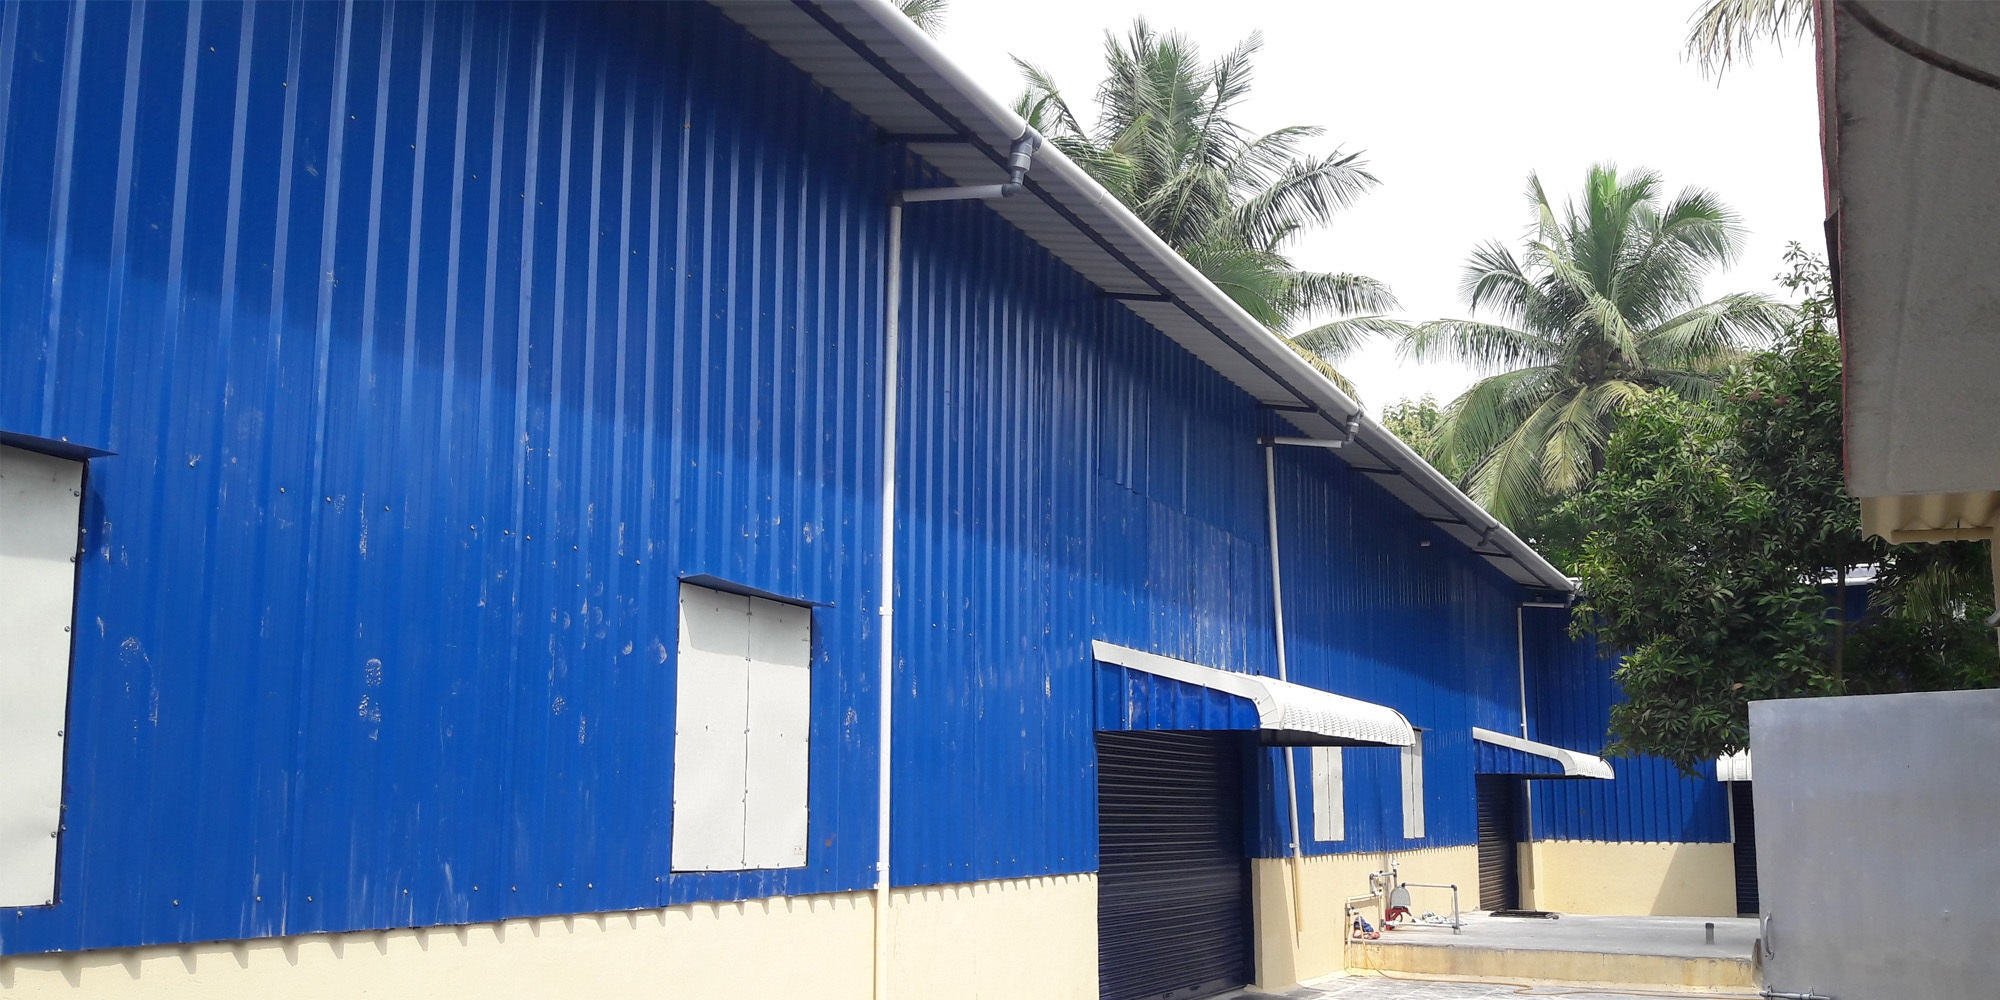 Roofing Contractors In Chennai Roofing Companies In Chennai